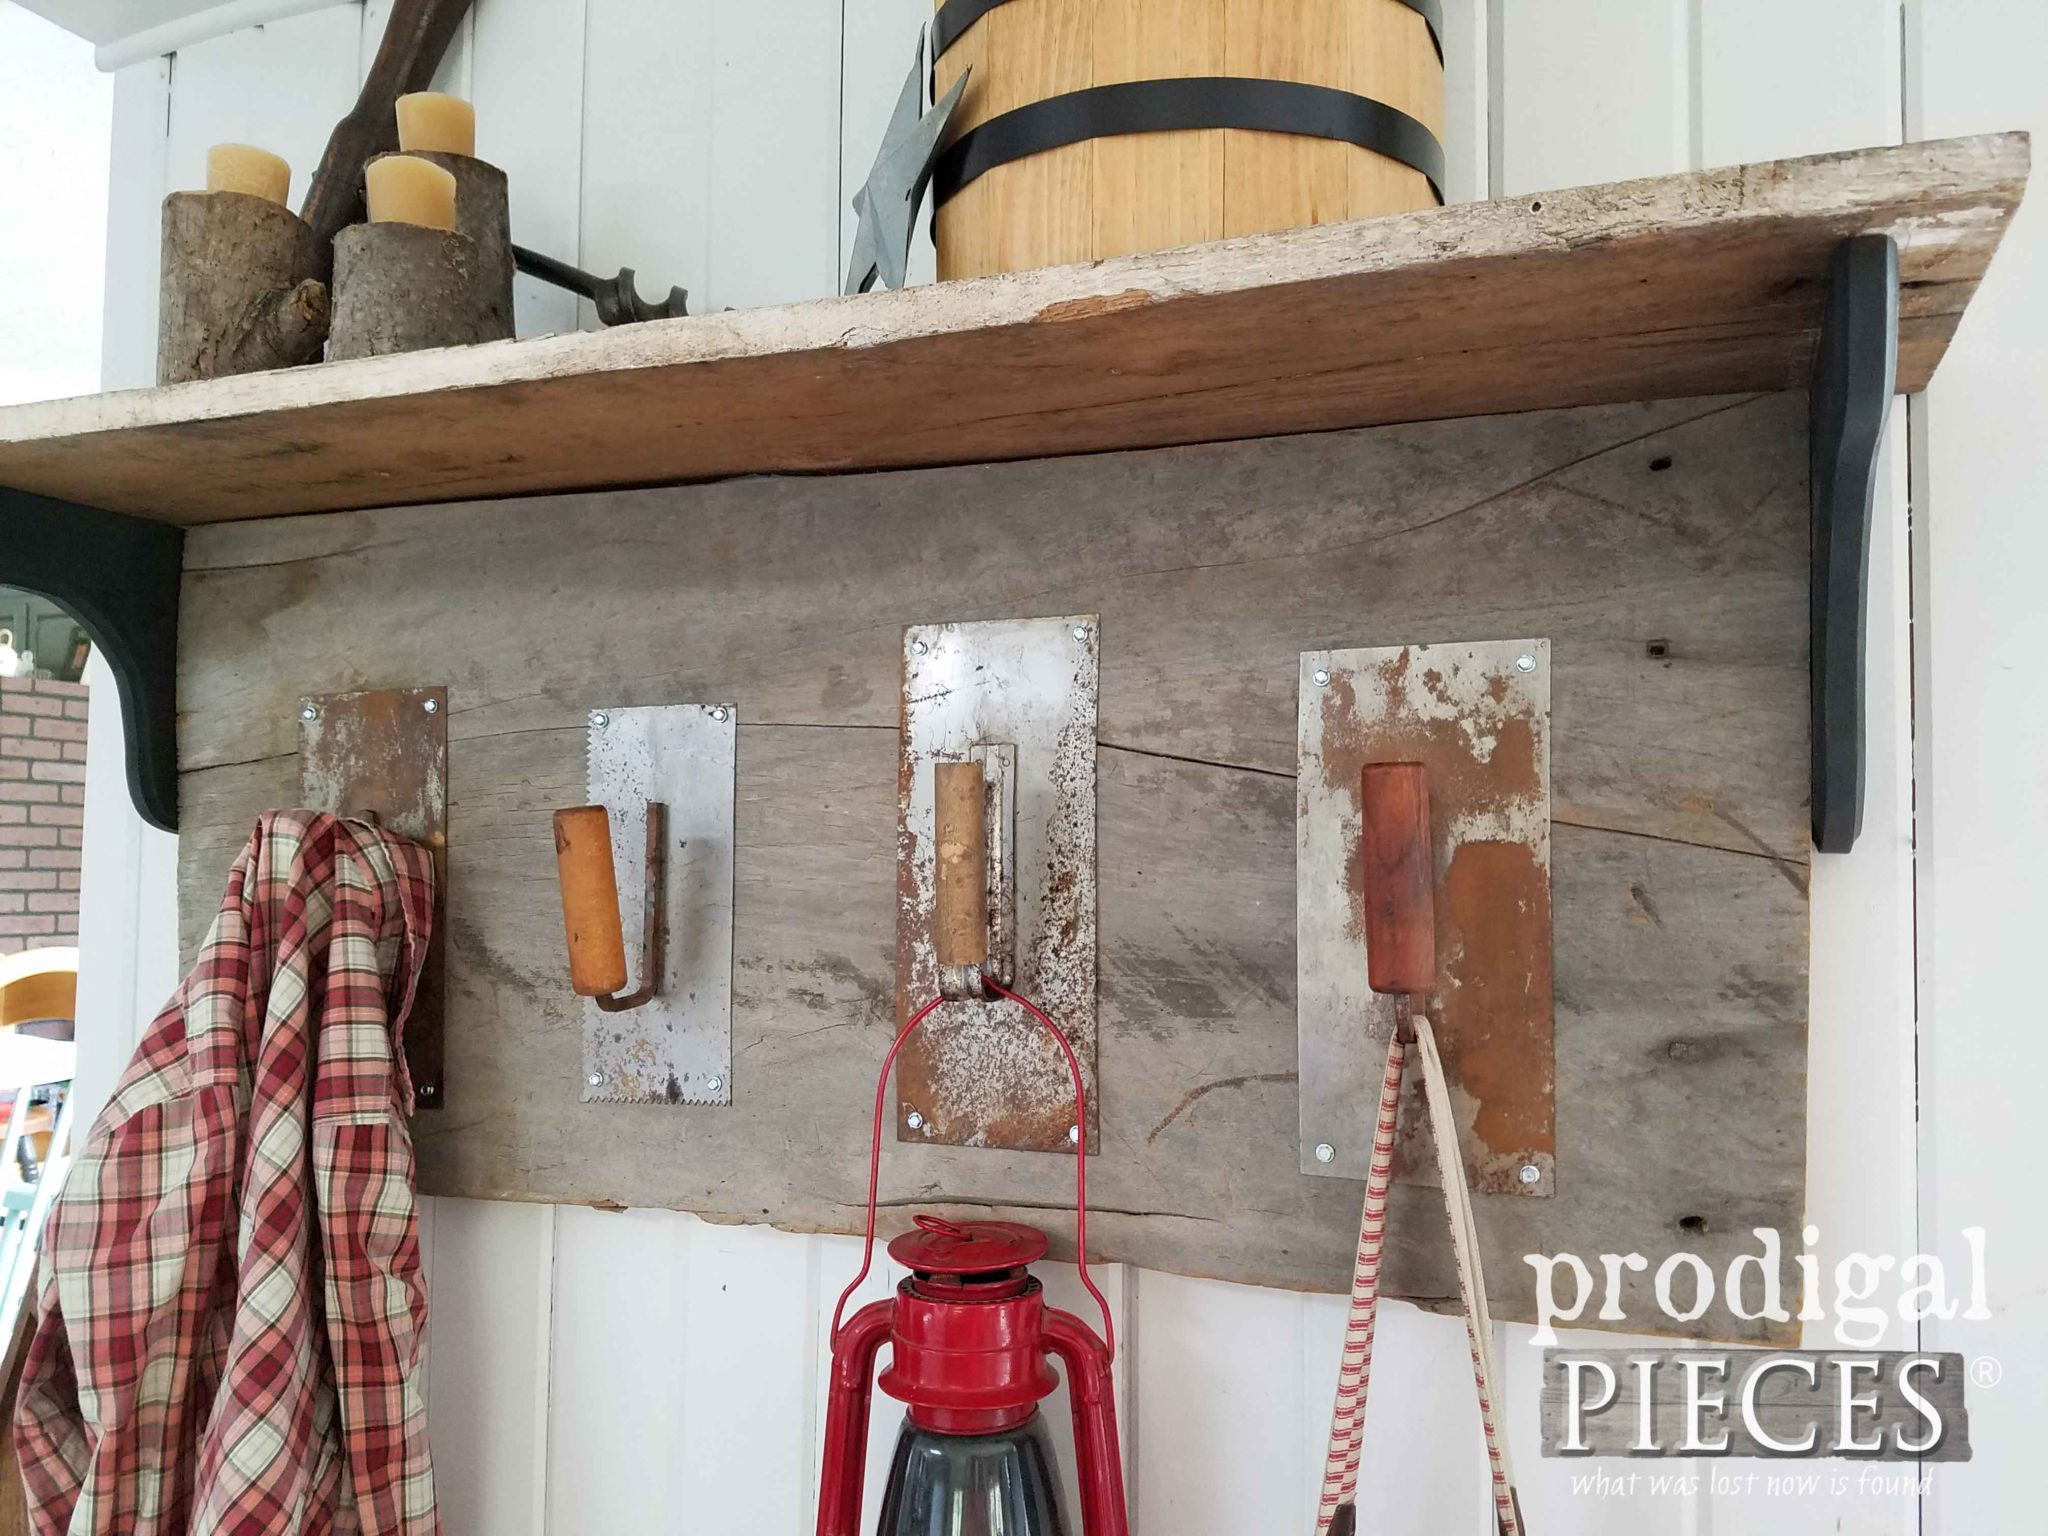 DIY Repurposed Trowel Coat Rack with Reclaimed Barn Wood by Prodigal Pieces | prodigalpieces.com